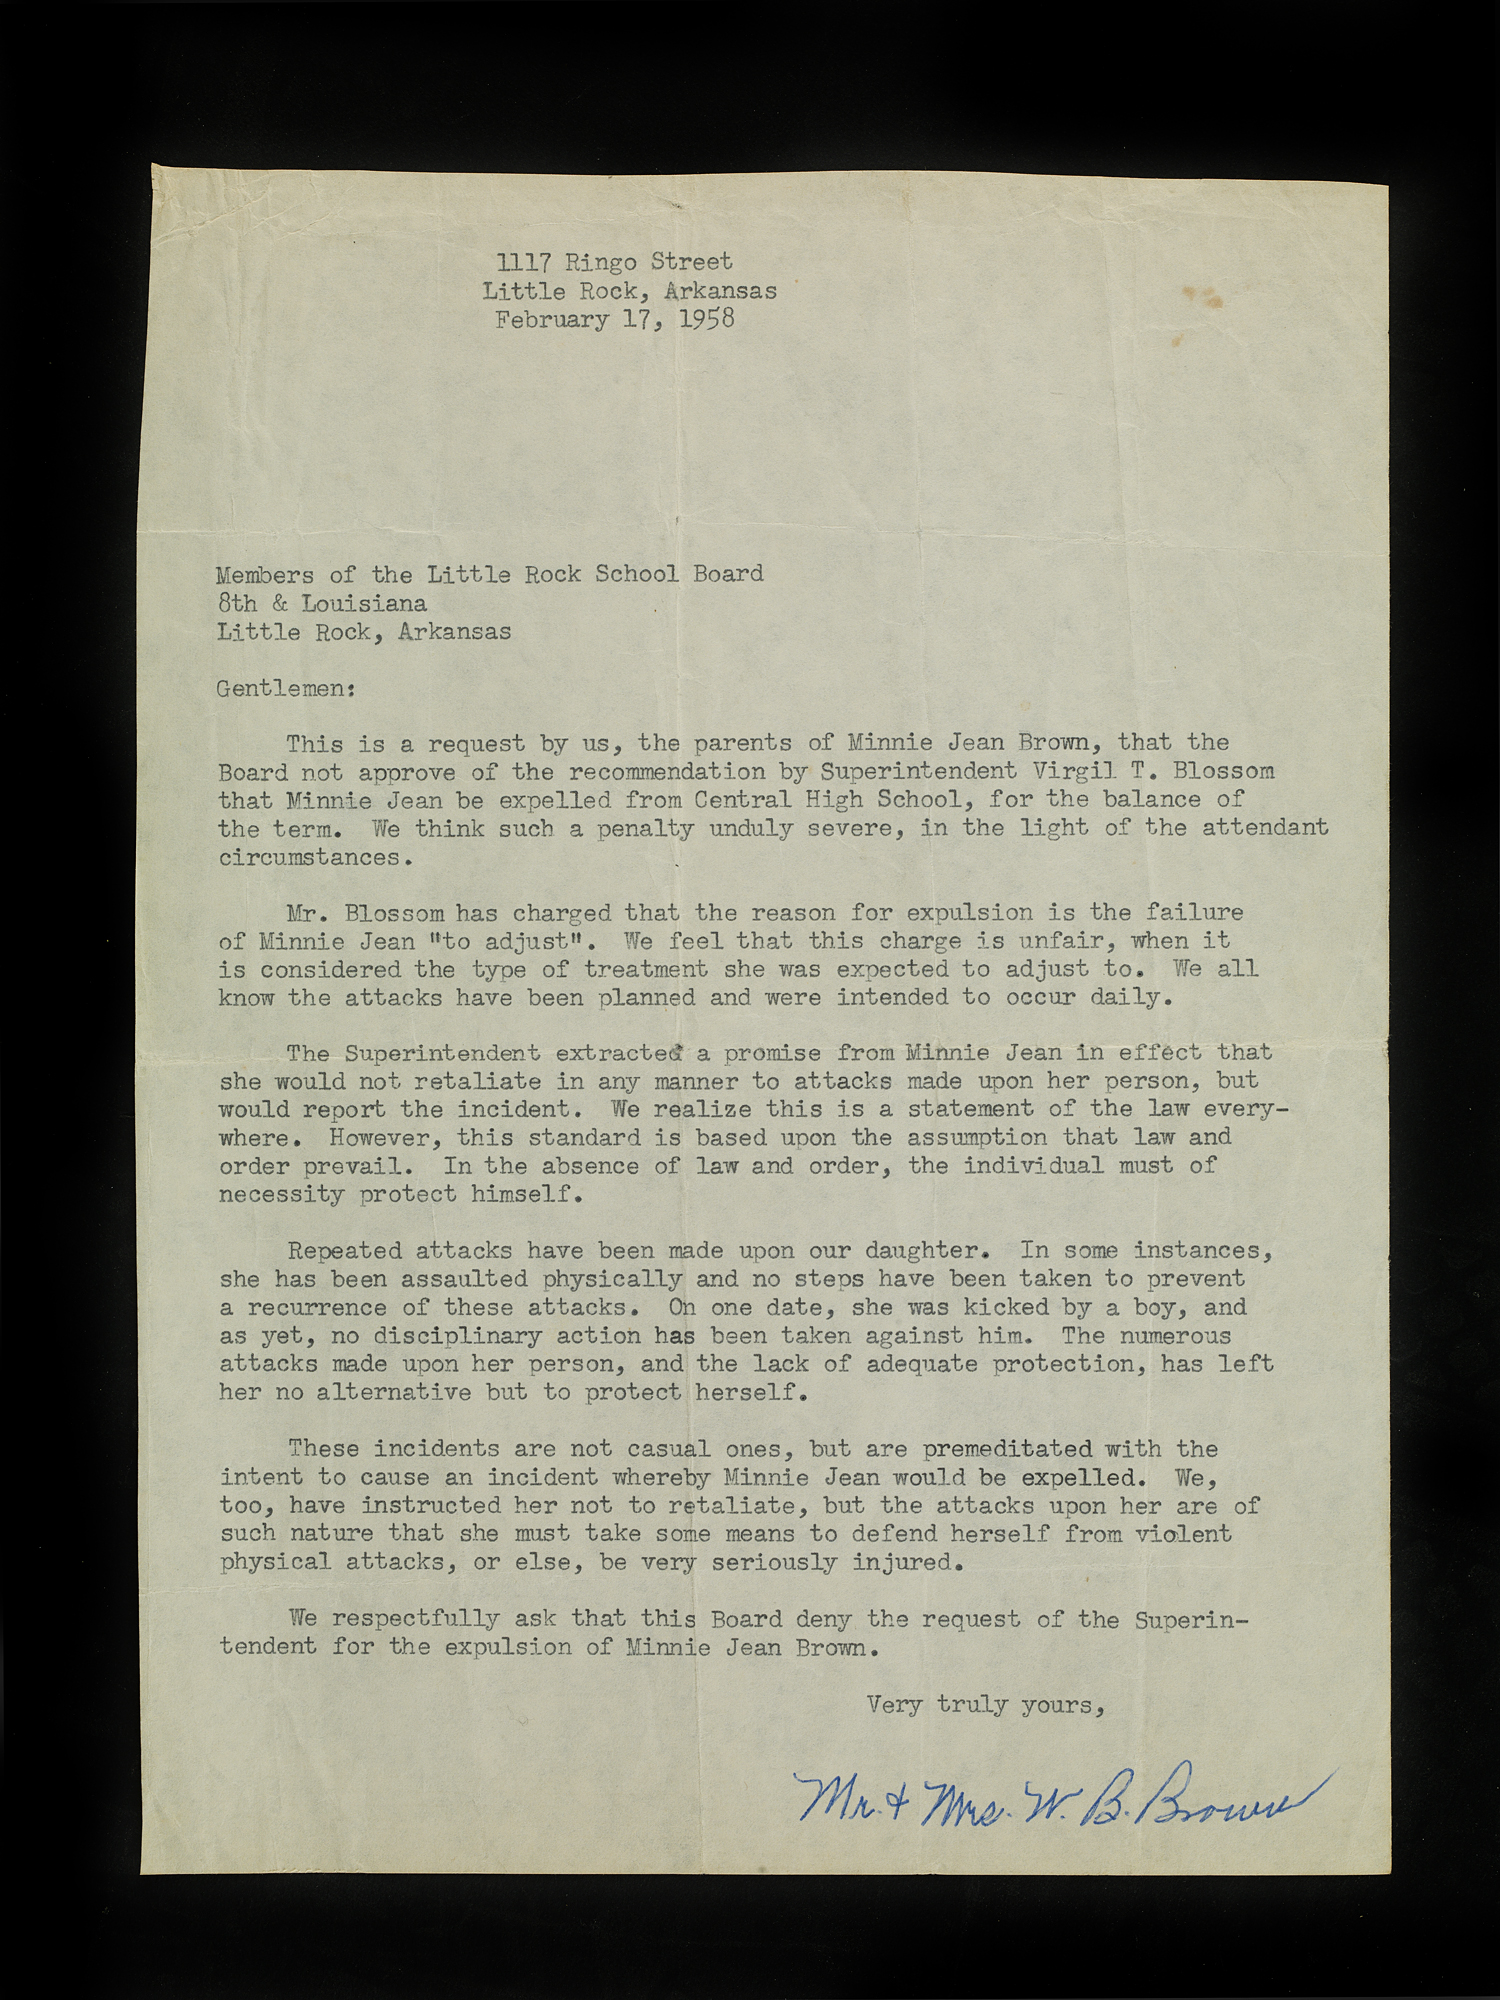 Letter To The Little Rock School Board From Mr And Mrs W B Brown Dated February 17 1958